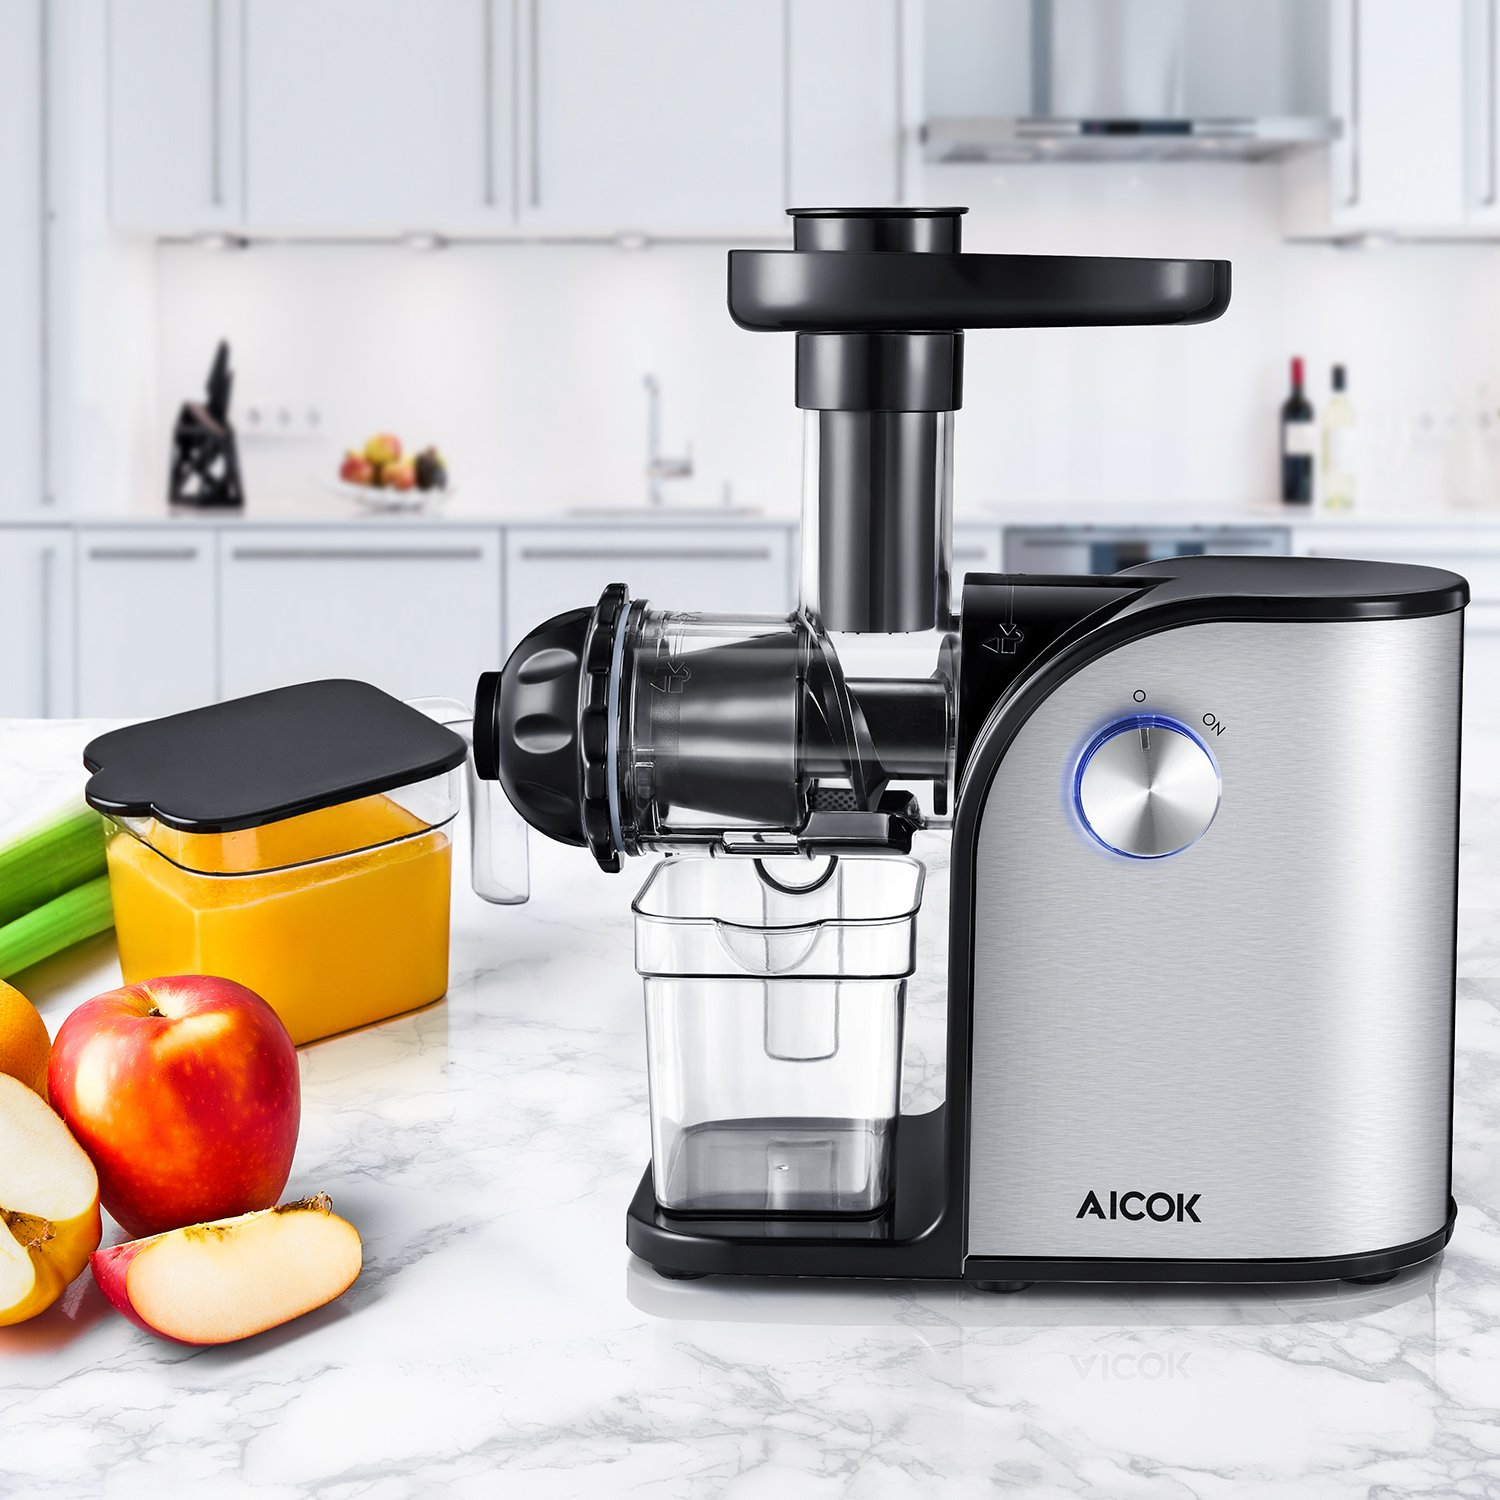 Aicok Slow Masticating juicer, Cold Press Juice Extractor, Stainless Steel, Quiet Motor, High Nutrient Fruit and Vegetable Juice, Black by AICOK (Image #5)